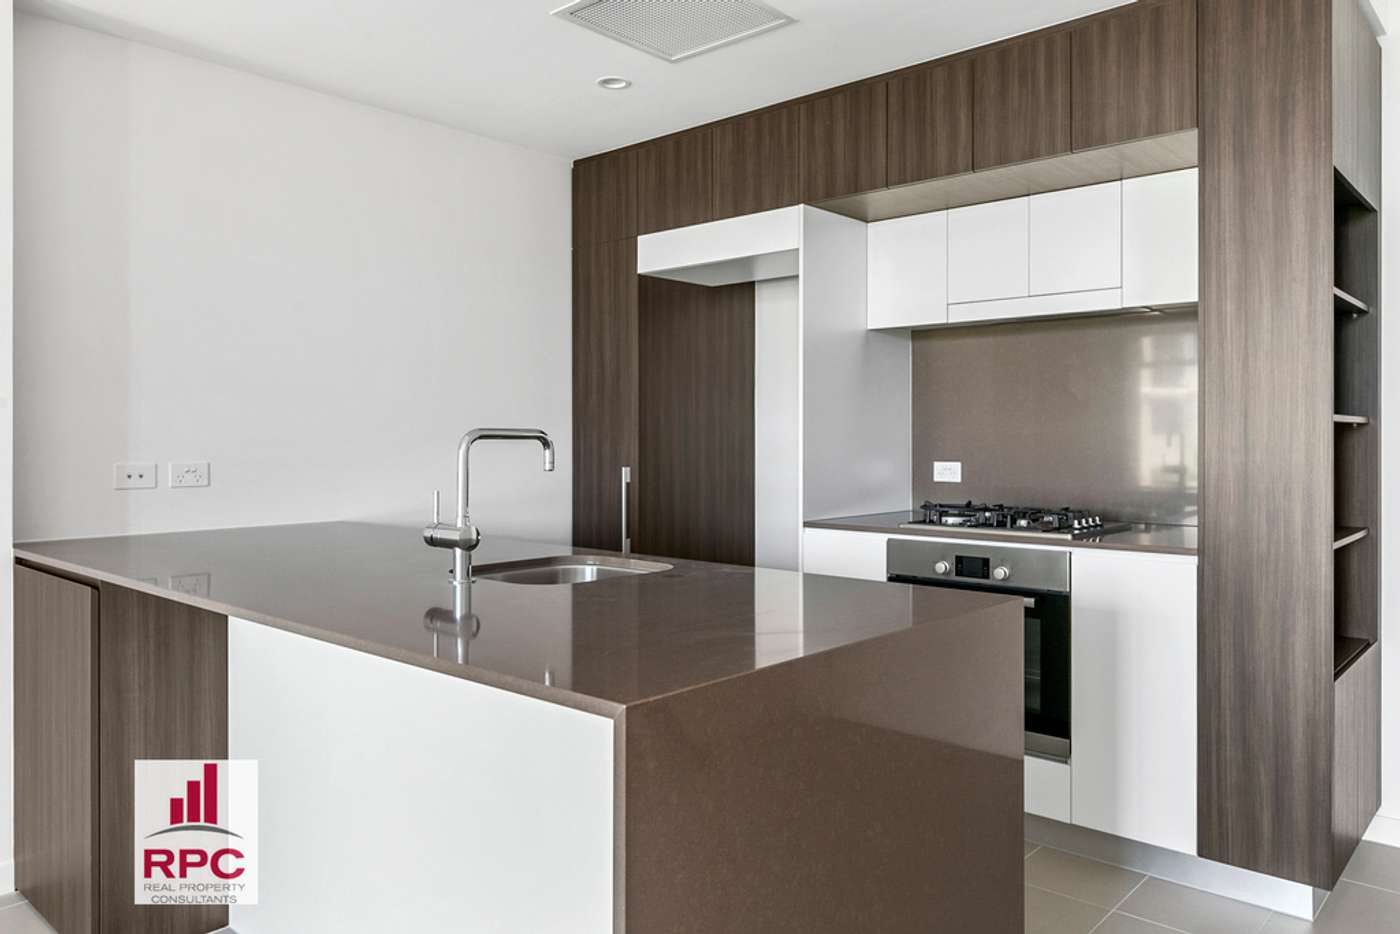 Main view of Homely apartment listing, 4205/18 Parkside Circuit, Hamilton QLD 4007